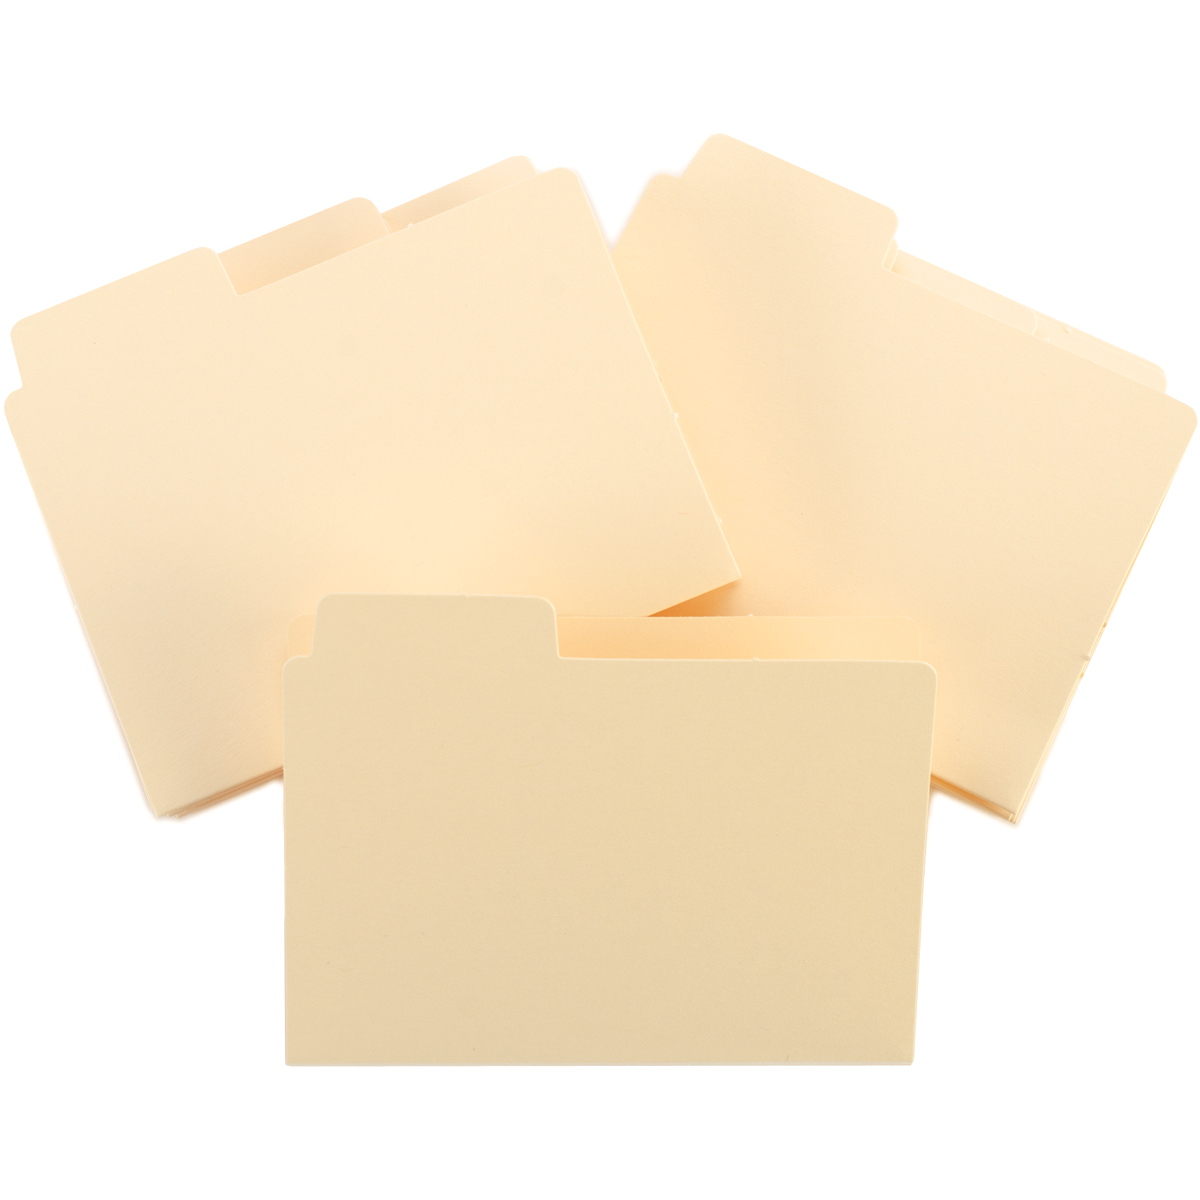 ATC Tabbed File Folders 3\u0022X3.75\u0022 12/Pkg-